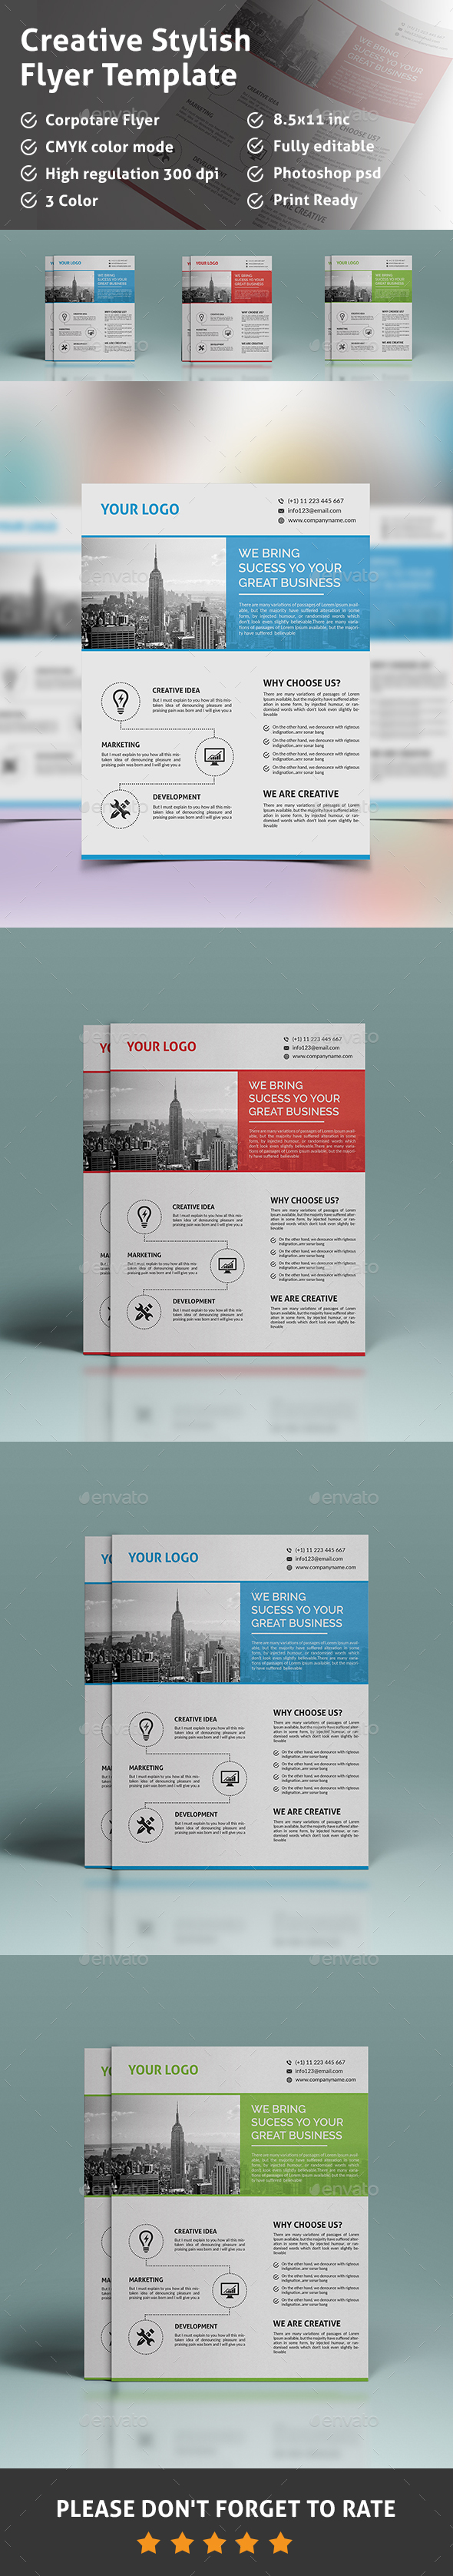 Creative Stylish Flyer Template  - Corporate Flyers